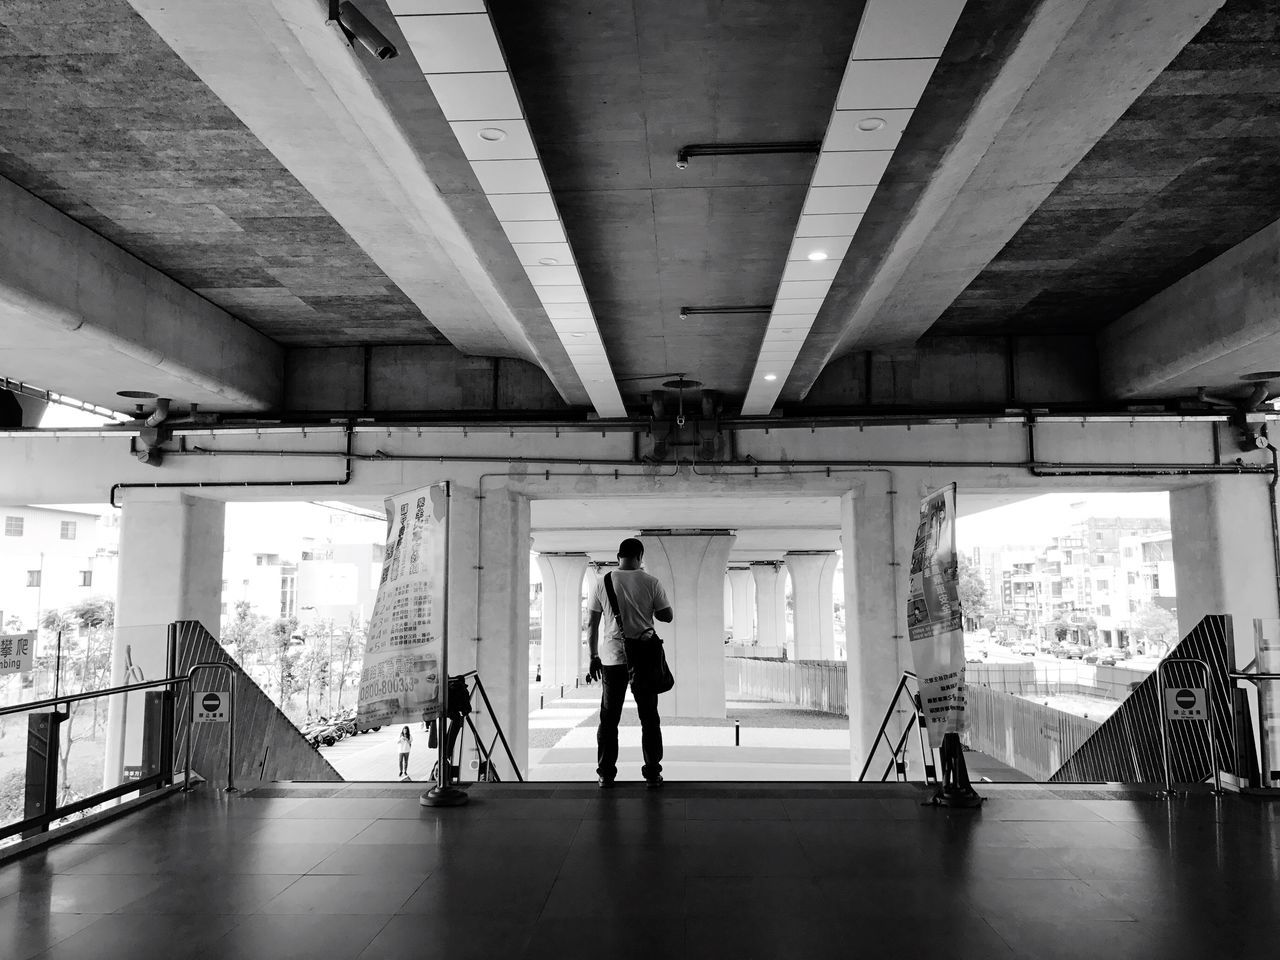 Waiting For A Train 🚂   Blackandwhite Candid Commuter At The Train Station Neighborhood Map Urban Landscape The Street Photographer - 2017 EyeEm Awards